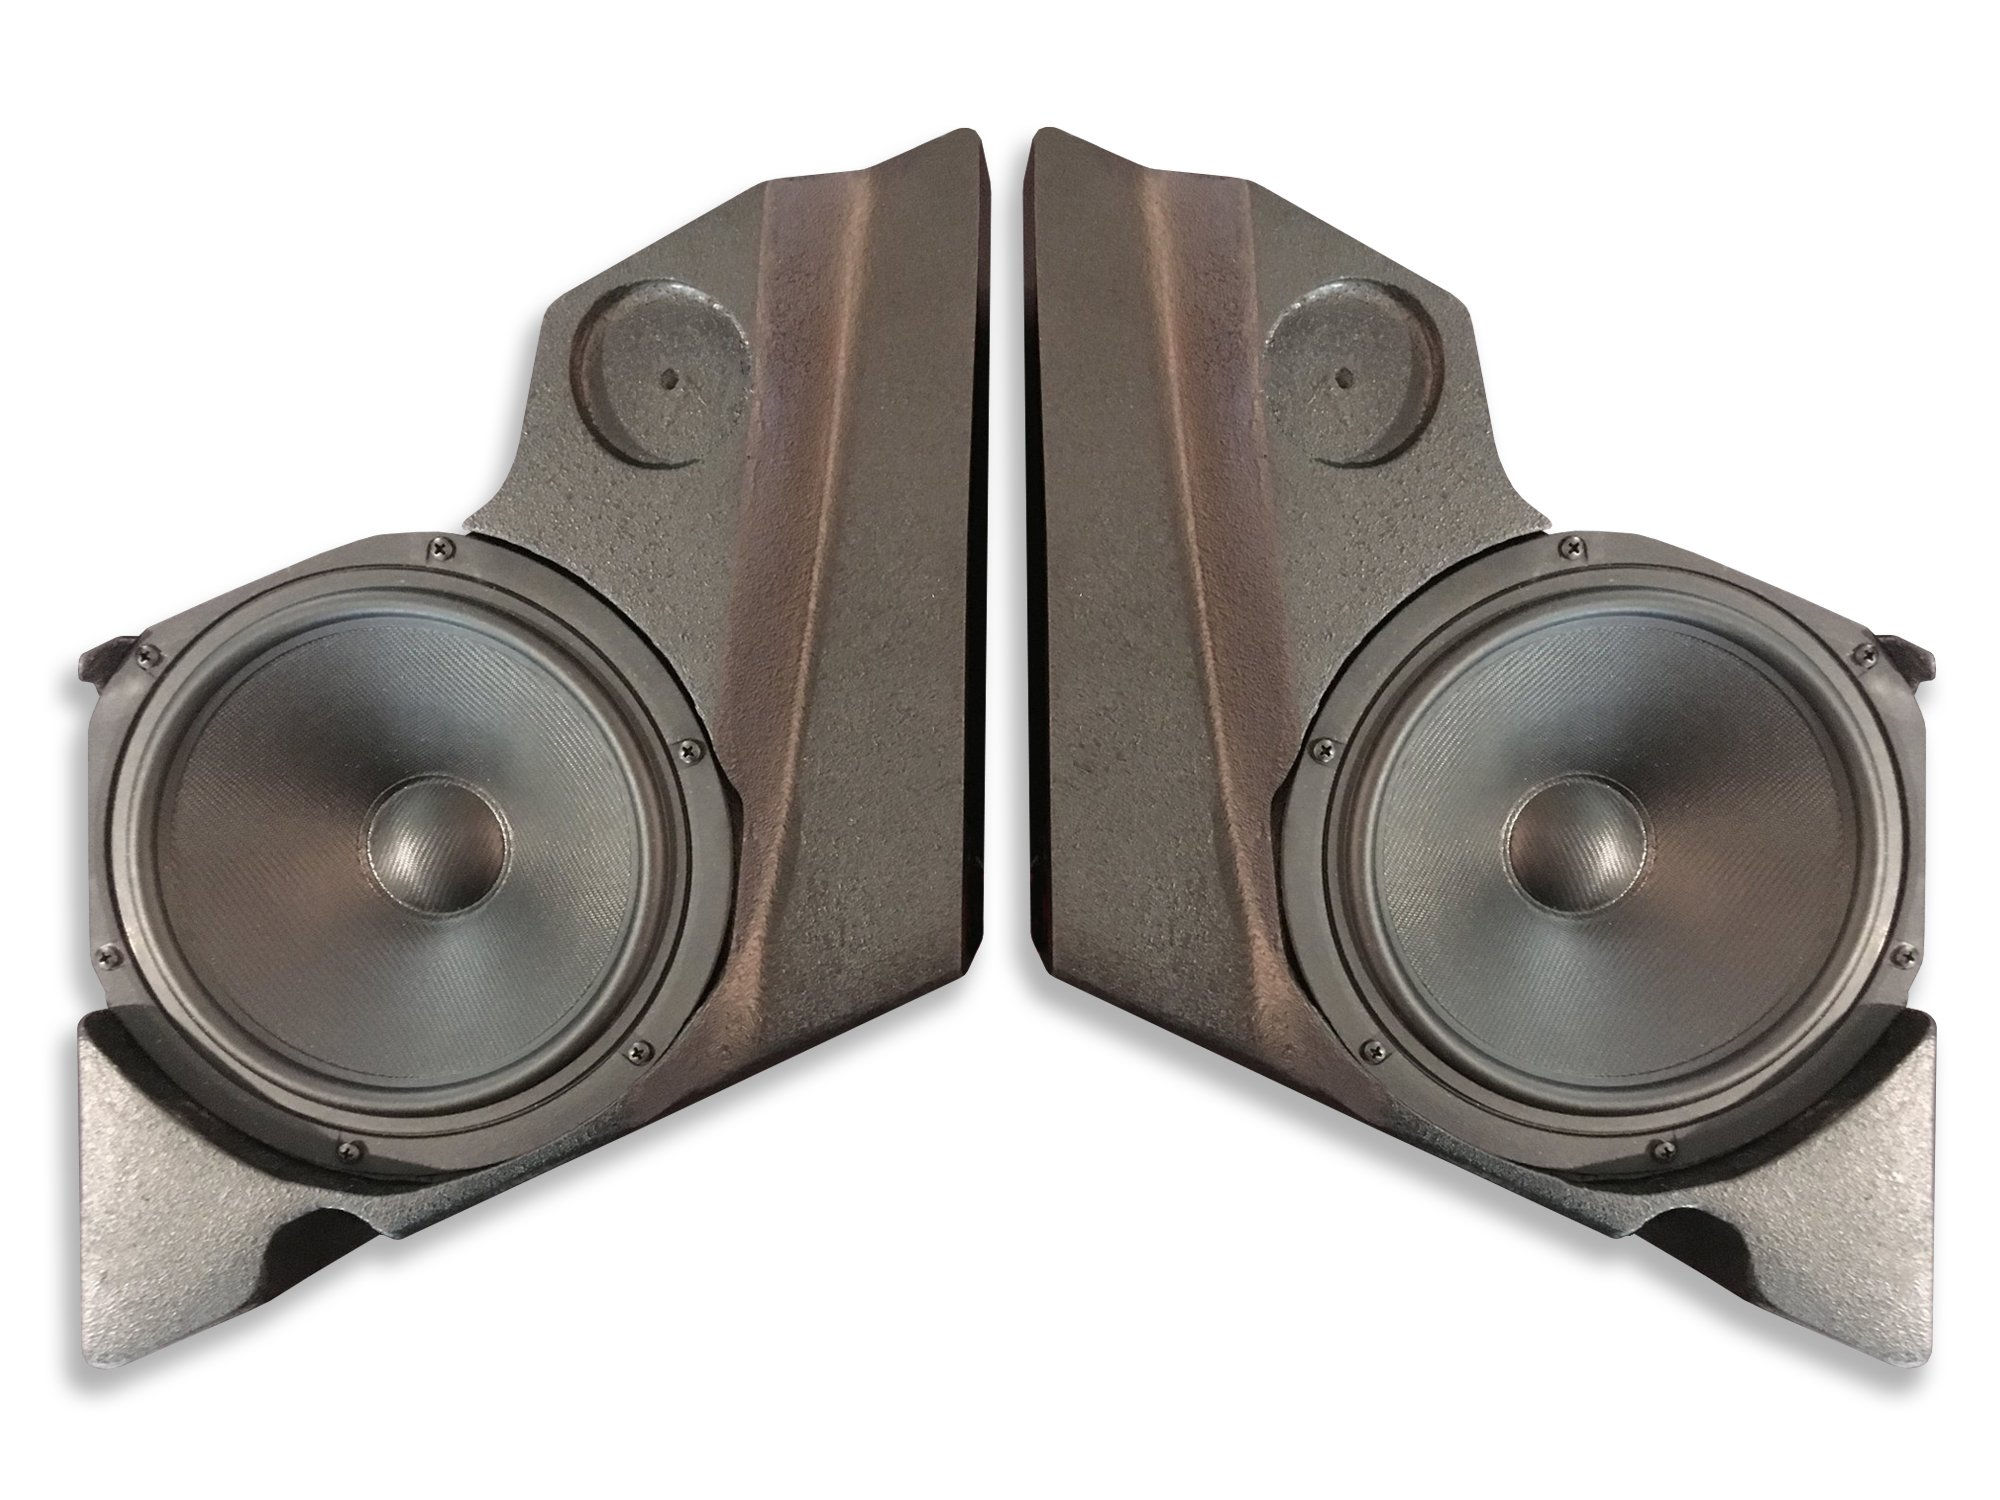 SinisterSound 8 speakers, enclosures, crossovers 14-up